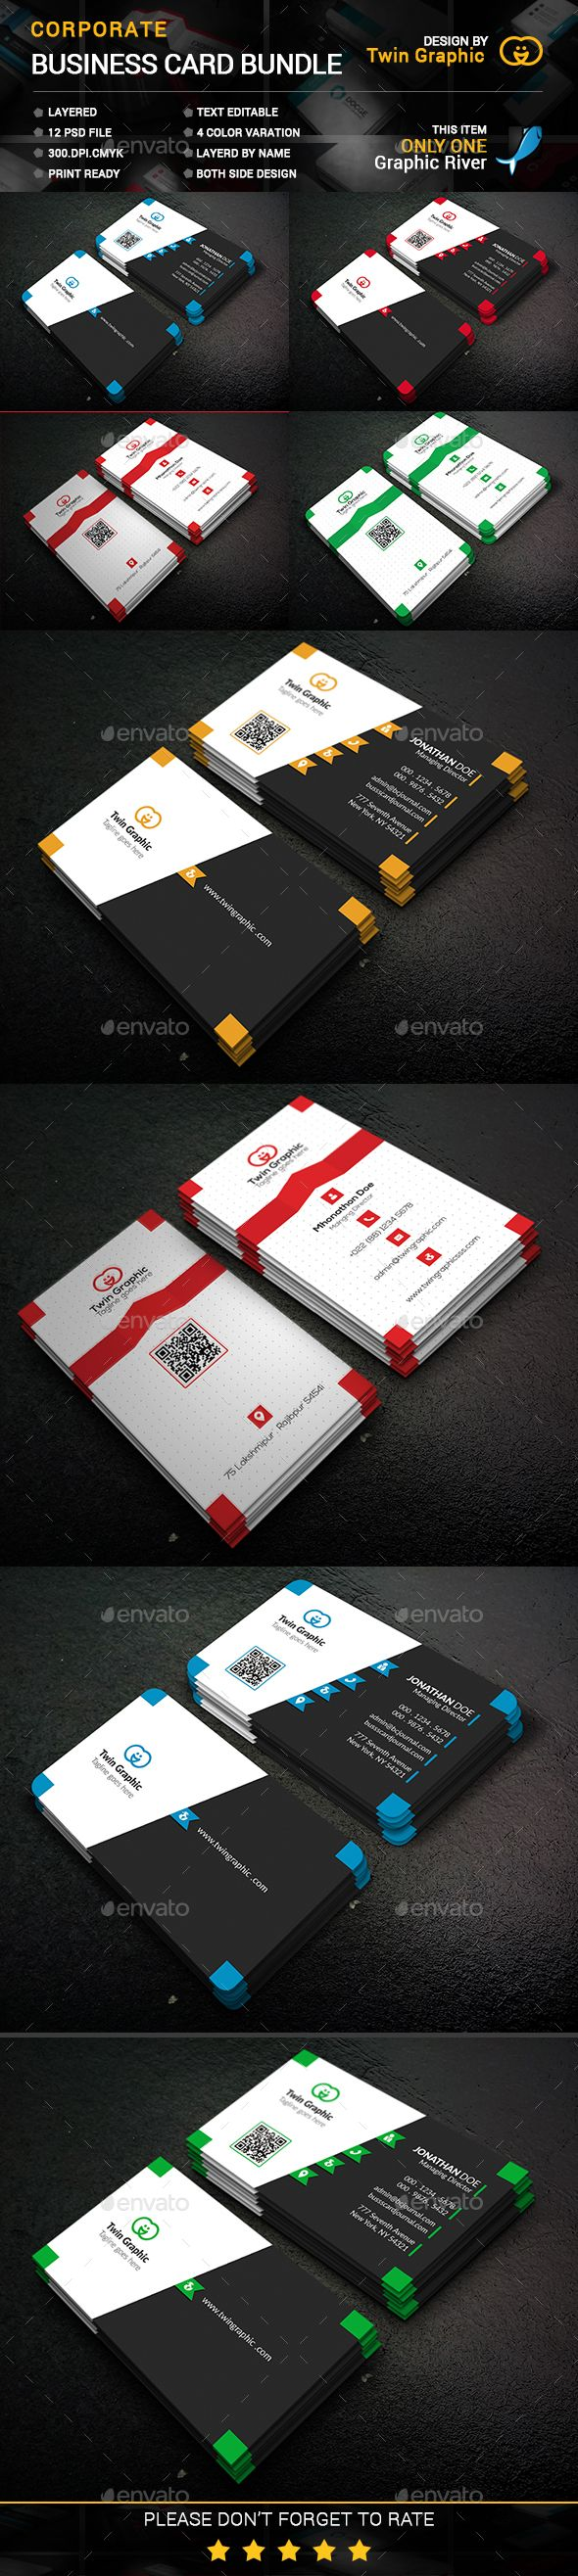 1145 best business card images on pinterest business cards name croportae business card bundle reheart Choice Image